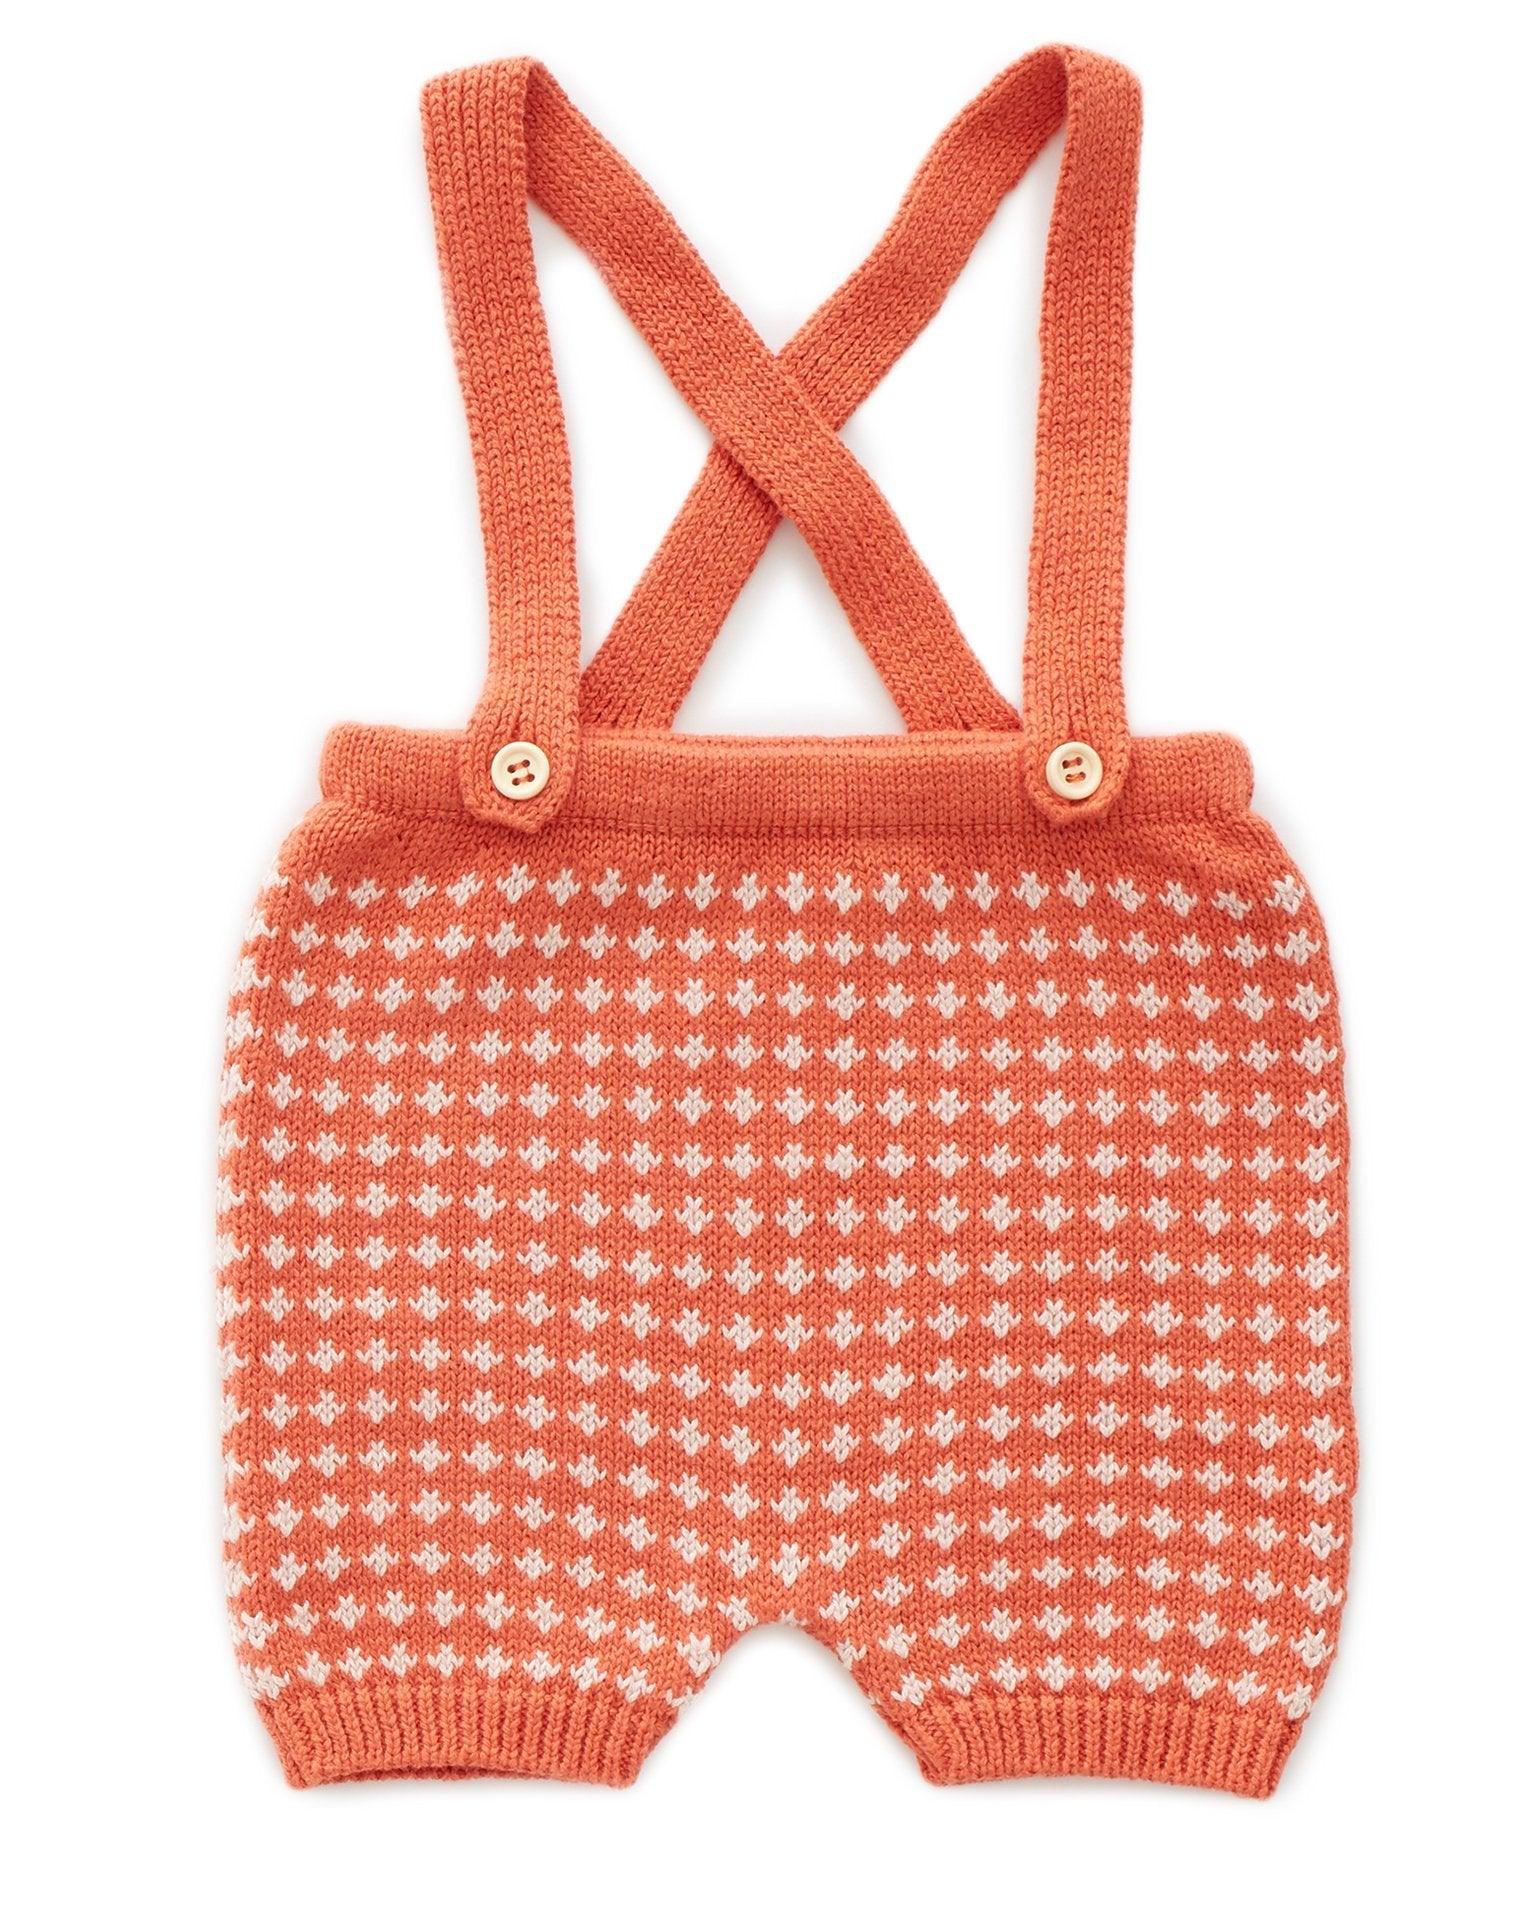 Little oeuf baby girl suspender shorts in autumn glaze + coral almond